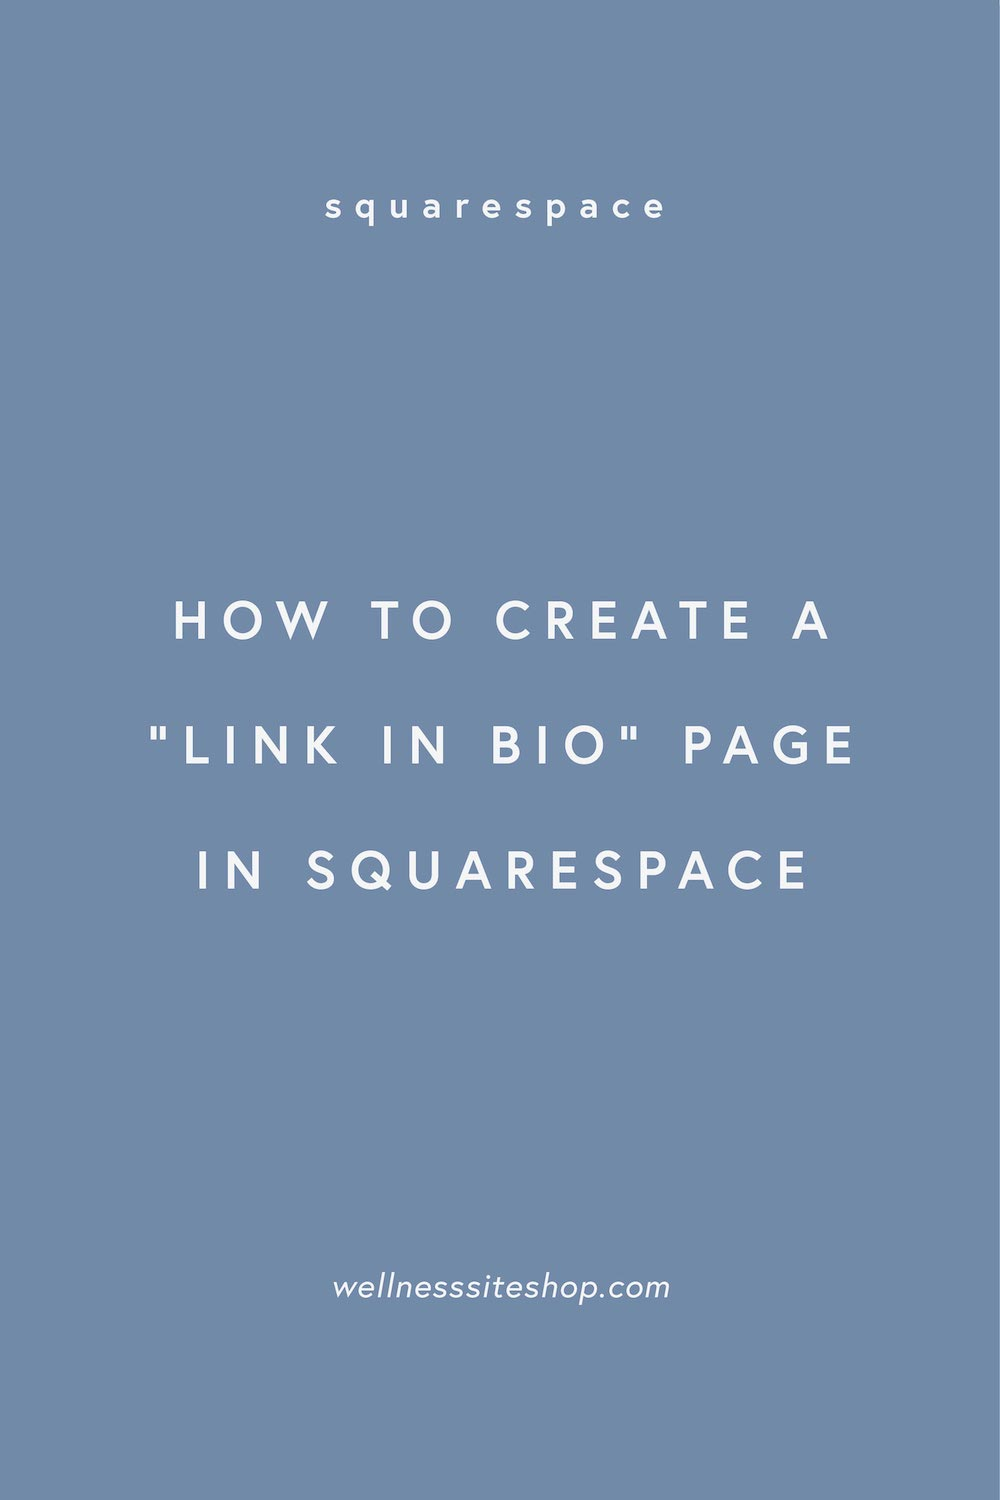 How to create a link in bio page in squarespace.jpg